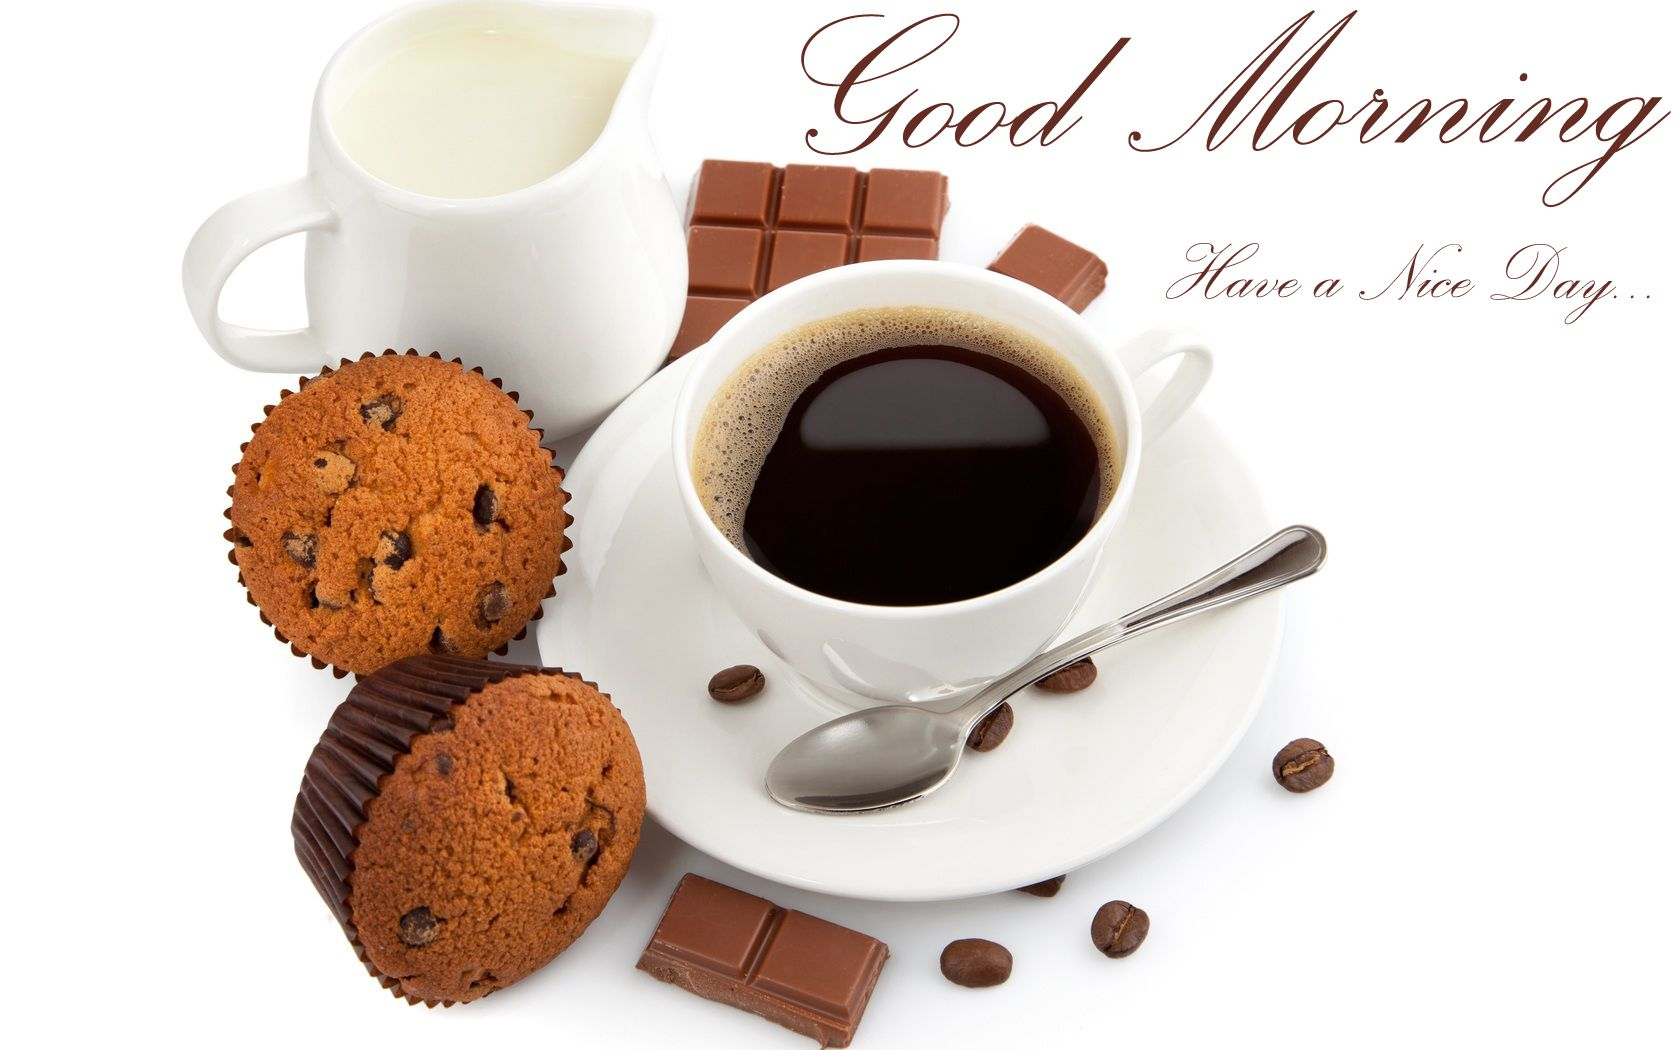 Good Morning Coffee Photos: Good Morning Hd Coffee Photos Coffee Wallpapers Images For